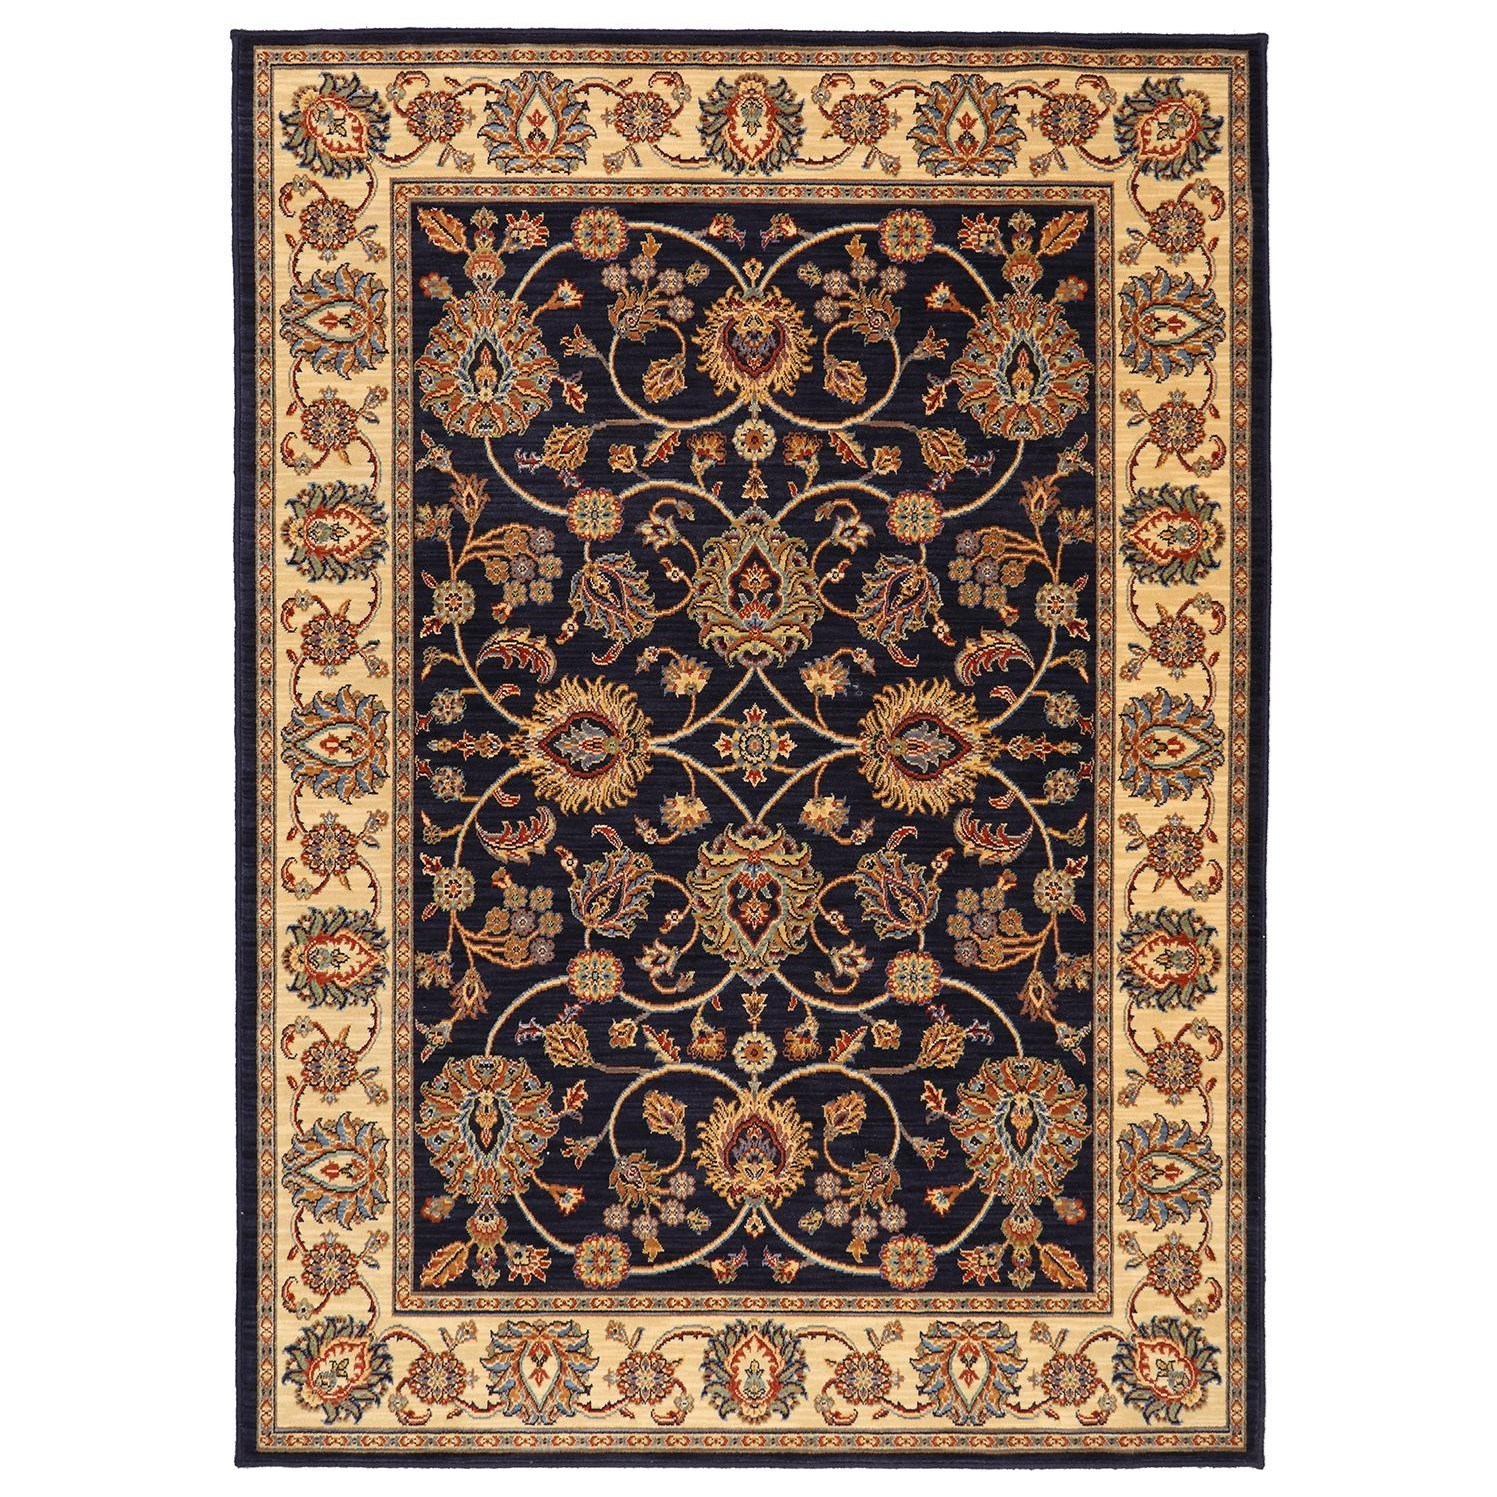 Karastan Rugs English Manor 2'6x4' Oxford Navy Rug - Item Number: 02120 00605 030048